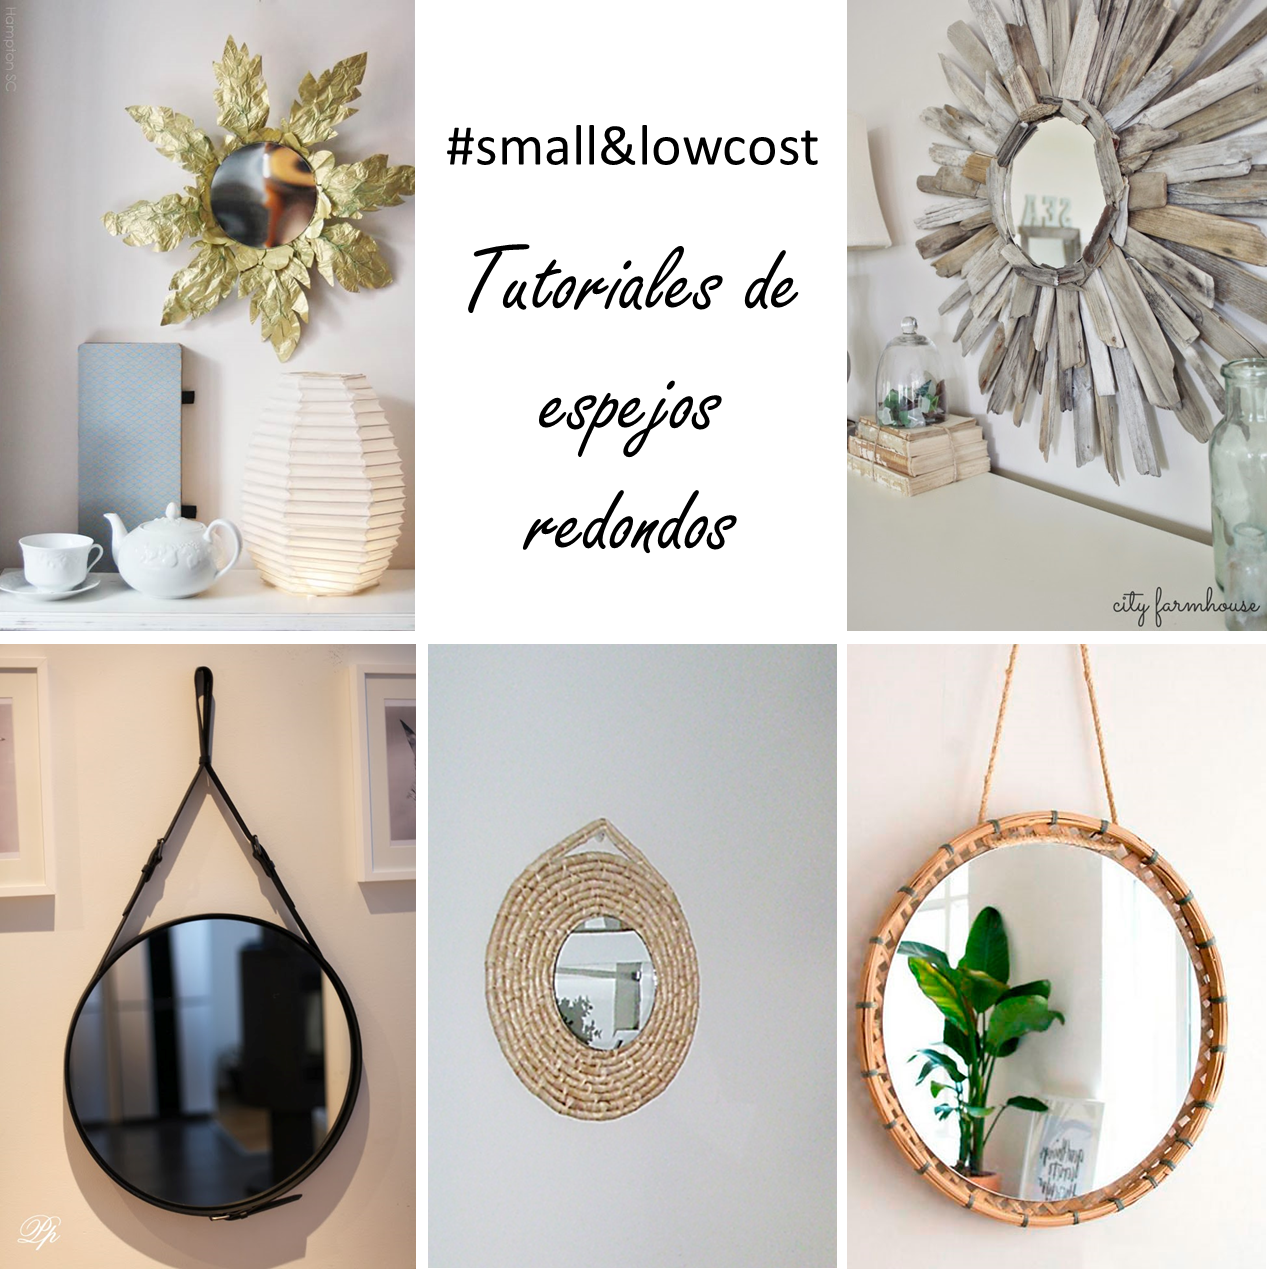 Small lowcost 5 tutoriales para espejos redondos for Espejos redondos para decorar